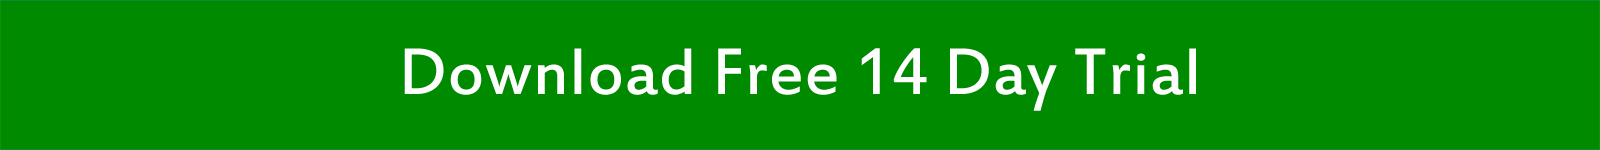 Download Free 14 Day Trial